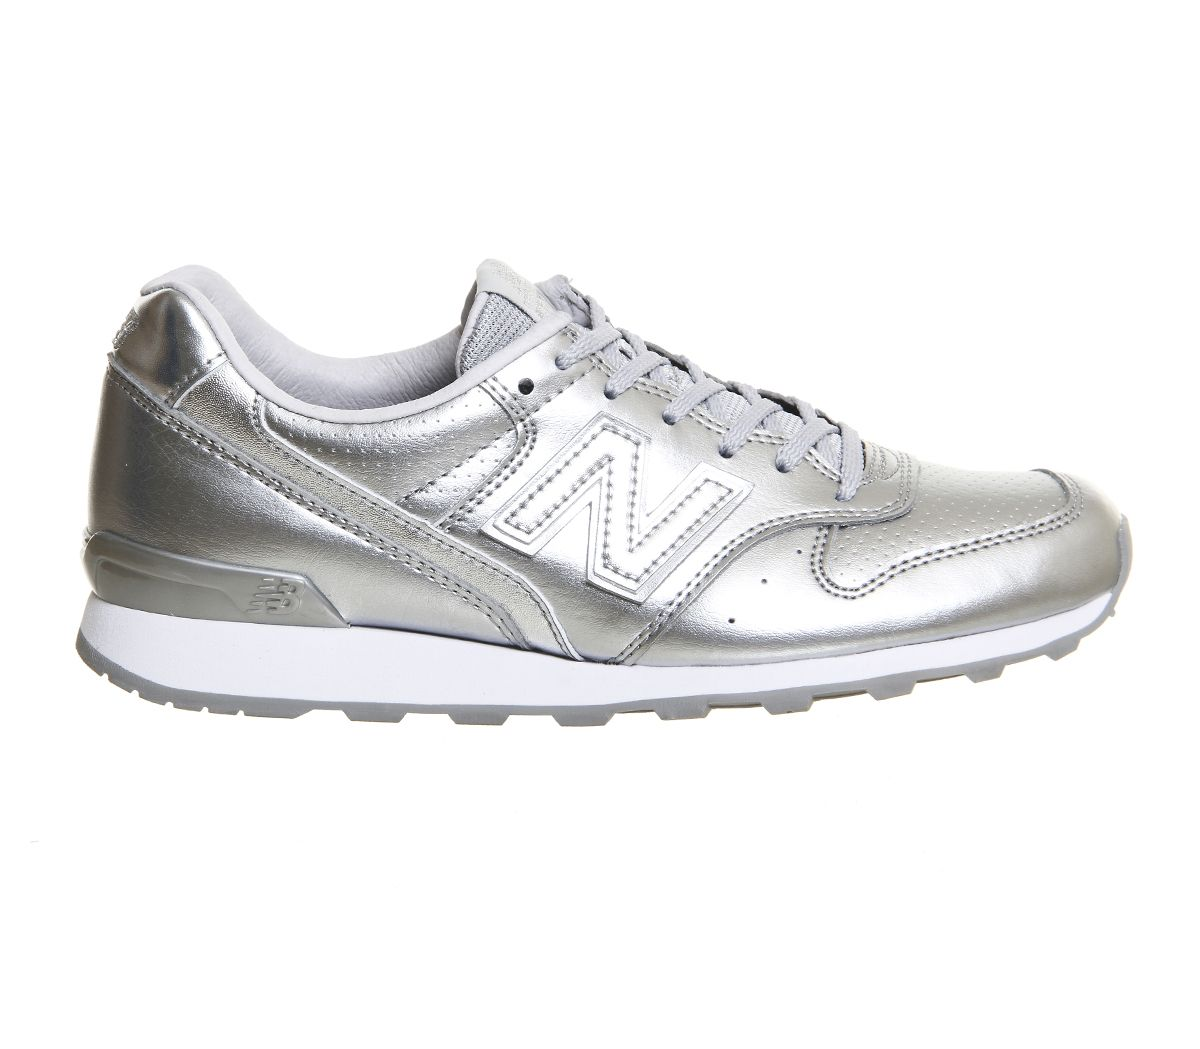 New Balance 996 Silver Mono Exclusive Hers trainers